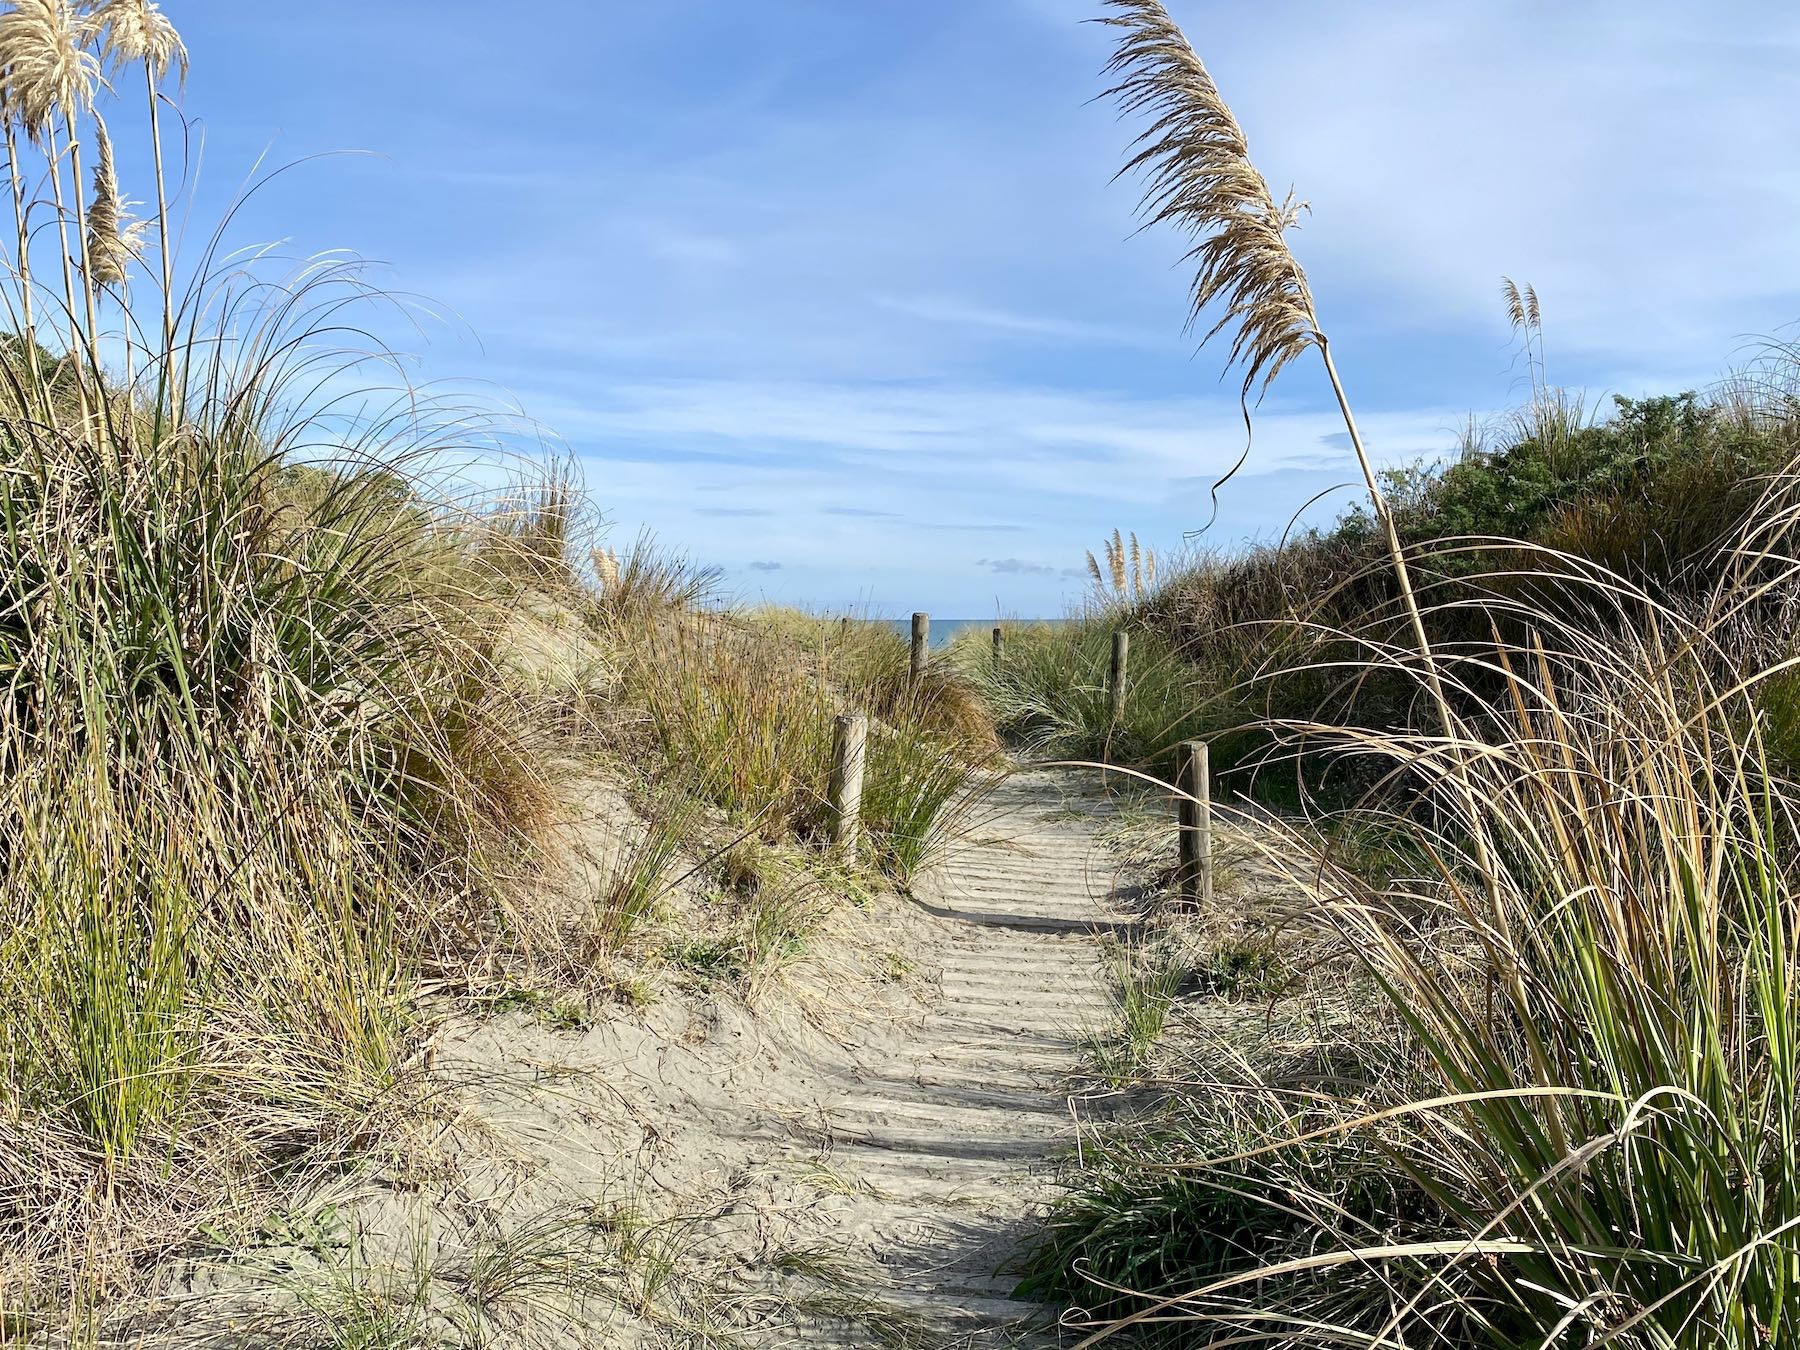 Wooden track through beach grasses with the sea just visible.